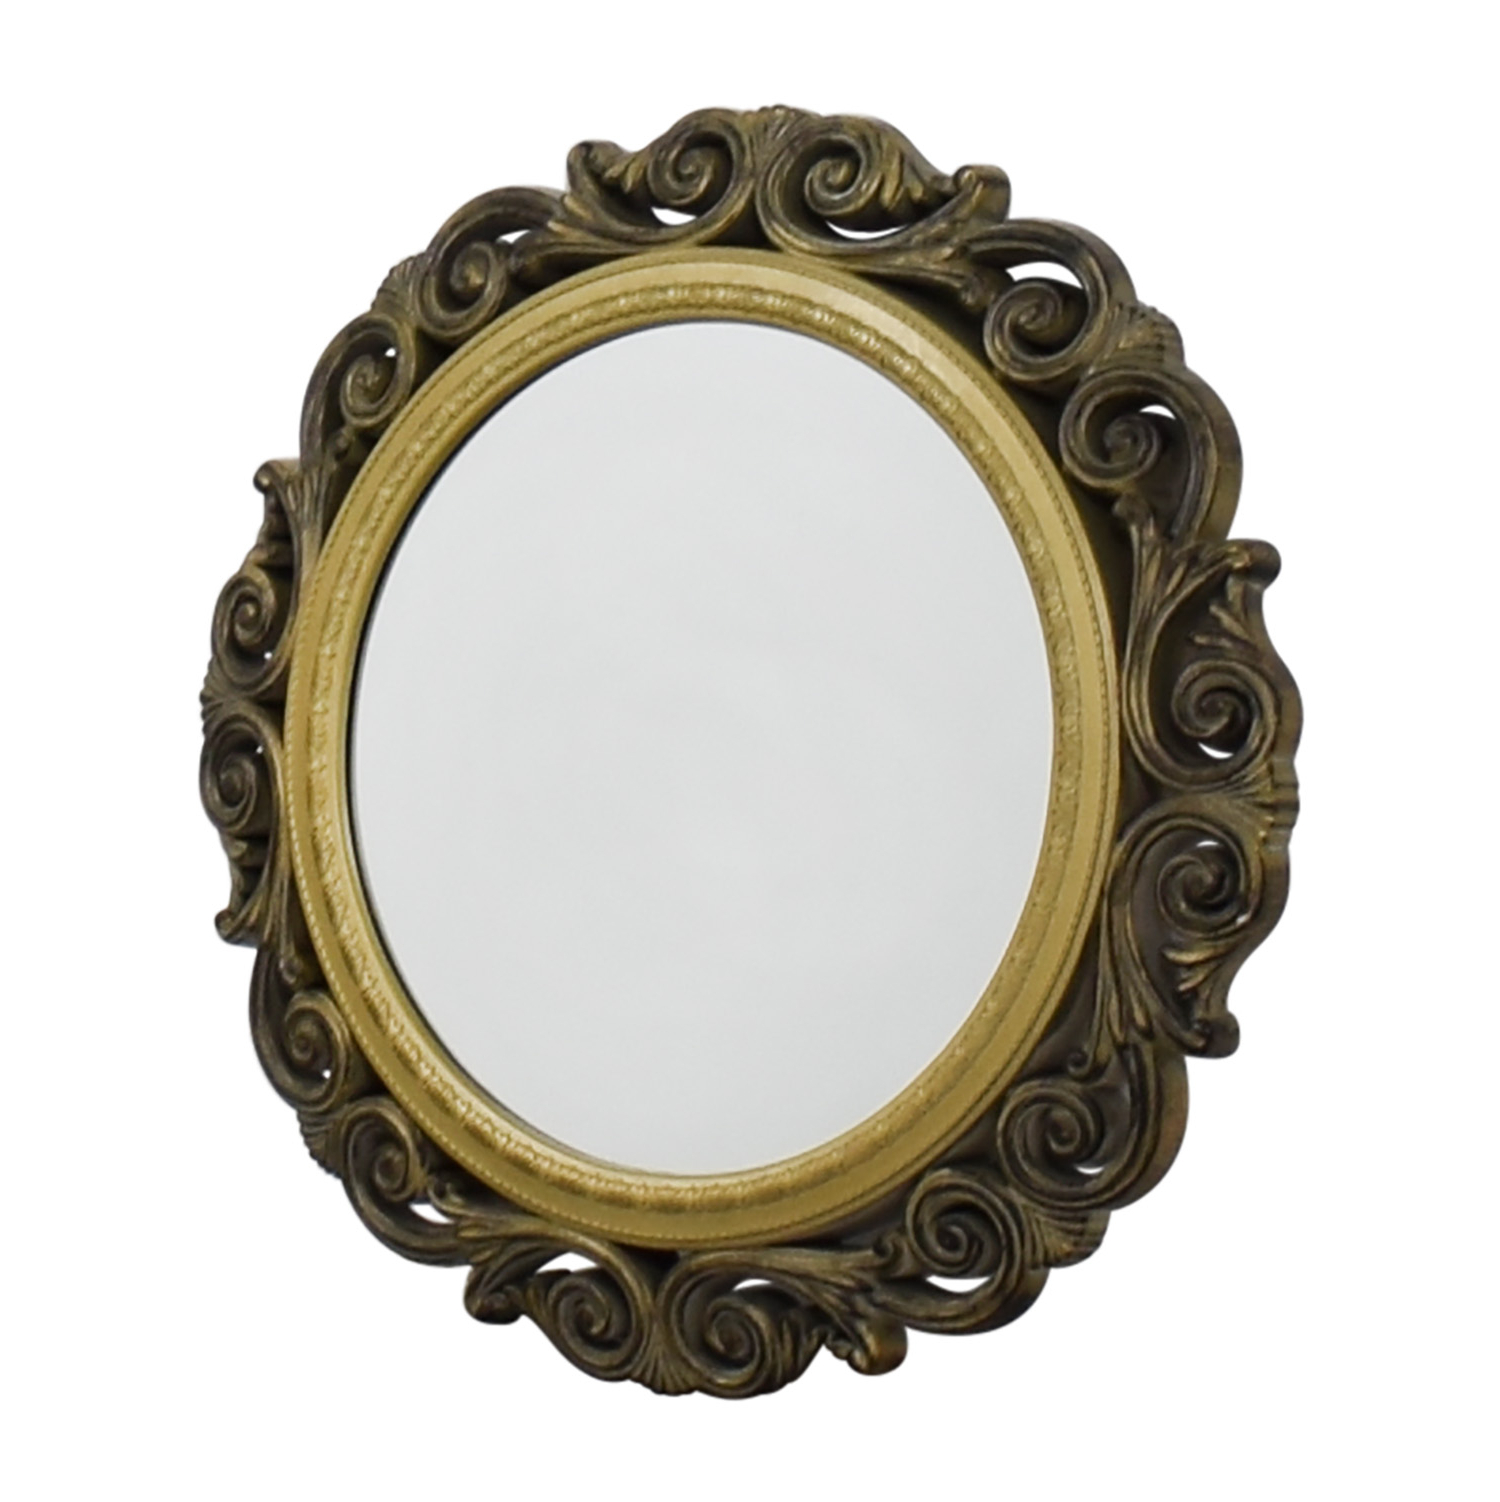 [%80% Off – Gold Scrolled Frame Round Wall Mirror / Decor With Popular Frames For Wall Mirrors|frames For Wall Mirrors Within Most Recently Released 80% Off – Gold Scrolled Frame Round Wall Mirror / Decor|recent Frames For Wall Mirrors Inside 80% Off – Gold Scrolled Frame Round Wall Mirror / Decor|fashionable 80% Off – Gold Scrolled Frame Round Wall Mirror / Decor For Frames For Wall Mirrors%] (View 7 of 20)